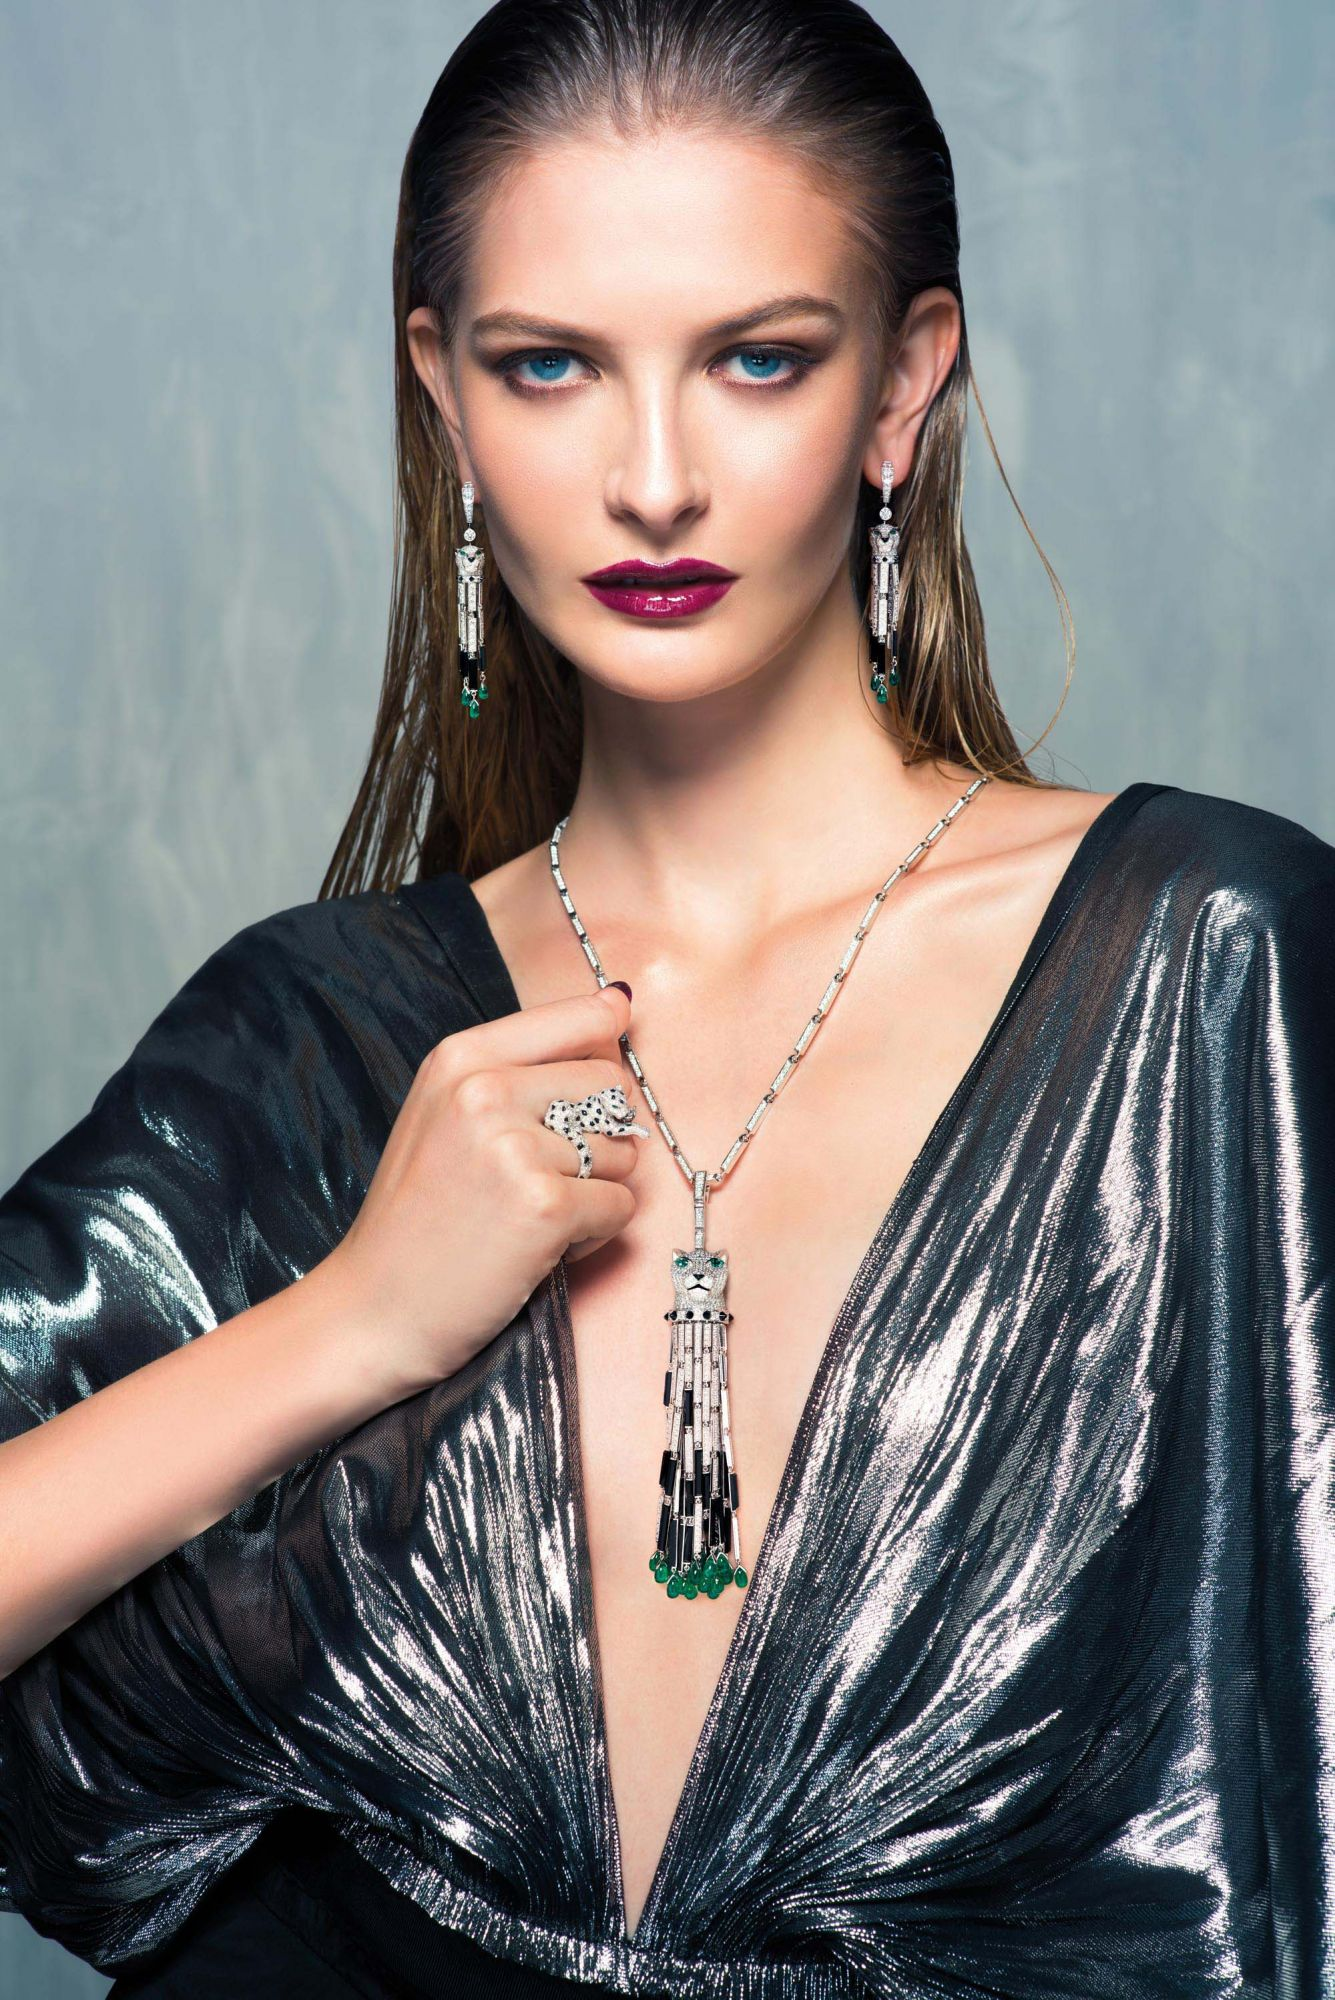 WILD AT HEART: Earrings, ring and necklace in white gold set with diamonds, emeralds and onyx by Cartier; dress by Loewe